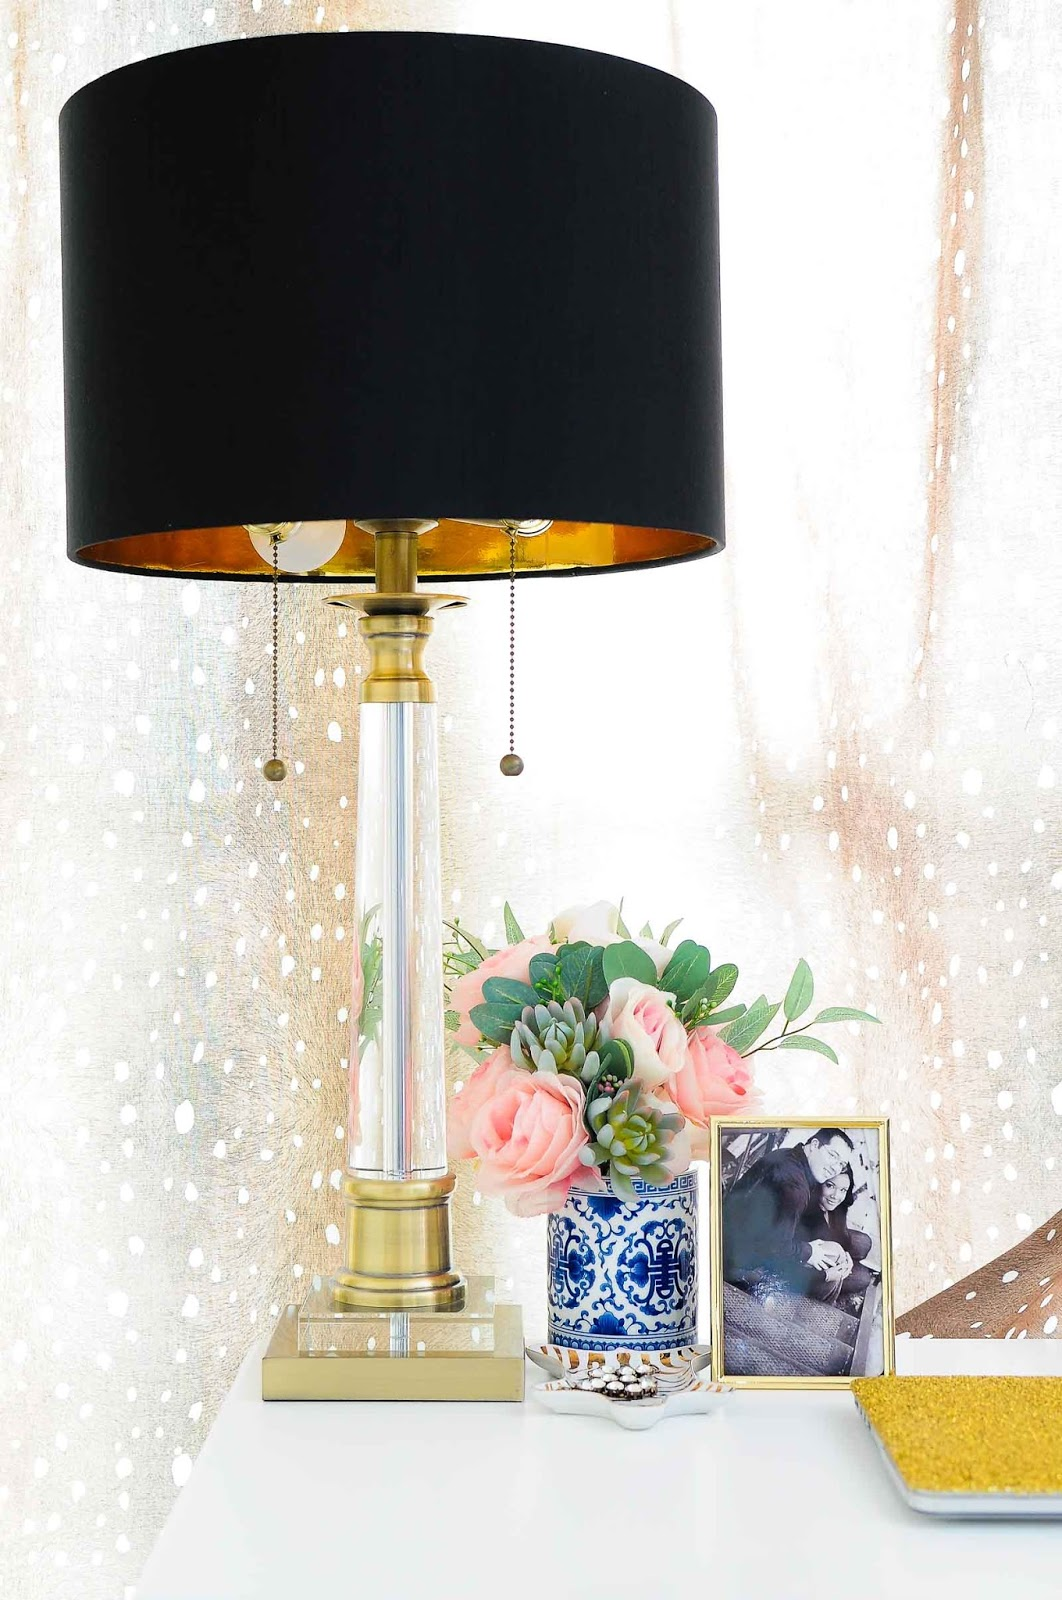 Brass and crystal table lamp looks stylish in this white and gold home office.